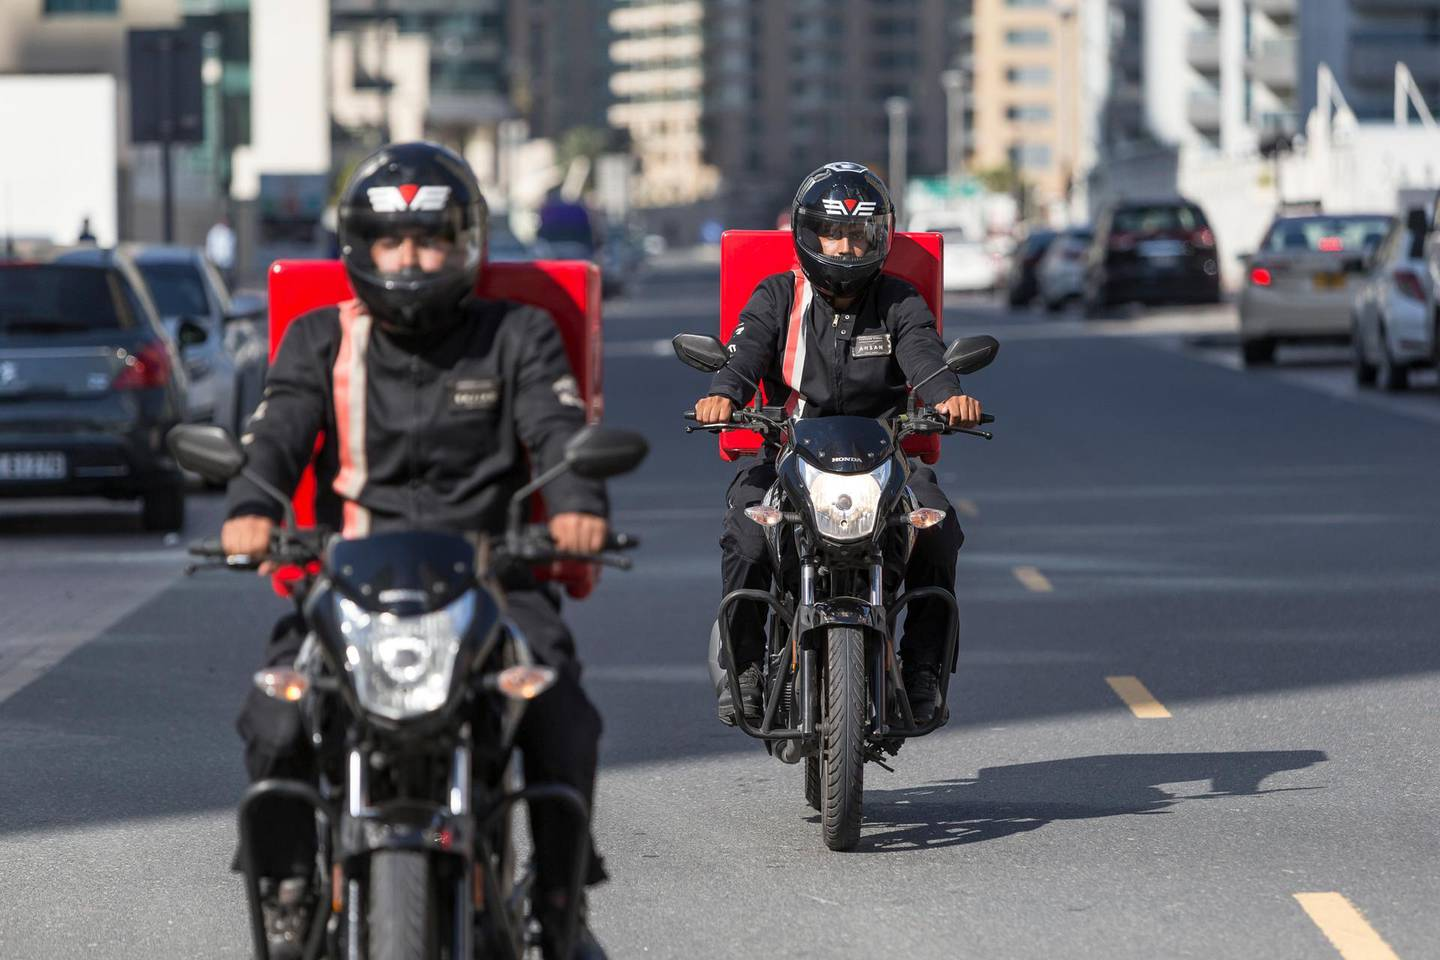 """DUBAI, UNITED ARAB EMIRATES, 21 APRIL 2016. A bike safety campaign called Safety Delivered where delivery drivers were asked who were important in their lives, and were given helmets with pictures of their family and words such """"I am a son"""" and """"I am a father"""". The aim is to remind the drivers that they have people counting on them to be safe while they are out on the road. Sajjad Hussein (front) and Ahsan Akhbar (Back) both from Pakistan ride  with their helmets and delivery bikes. (Photo: Antonie Robertson/The National) ID: 44814. Journalist: Ramona Ruiz. Section: National. *** Local Caption ***  AR_2104_Delivery_Bike_Safety-17.JPG"""